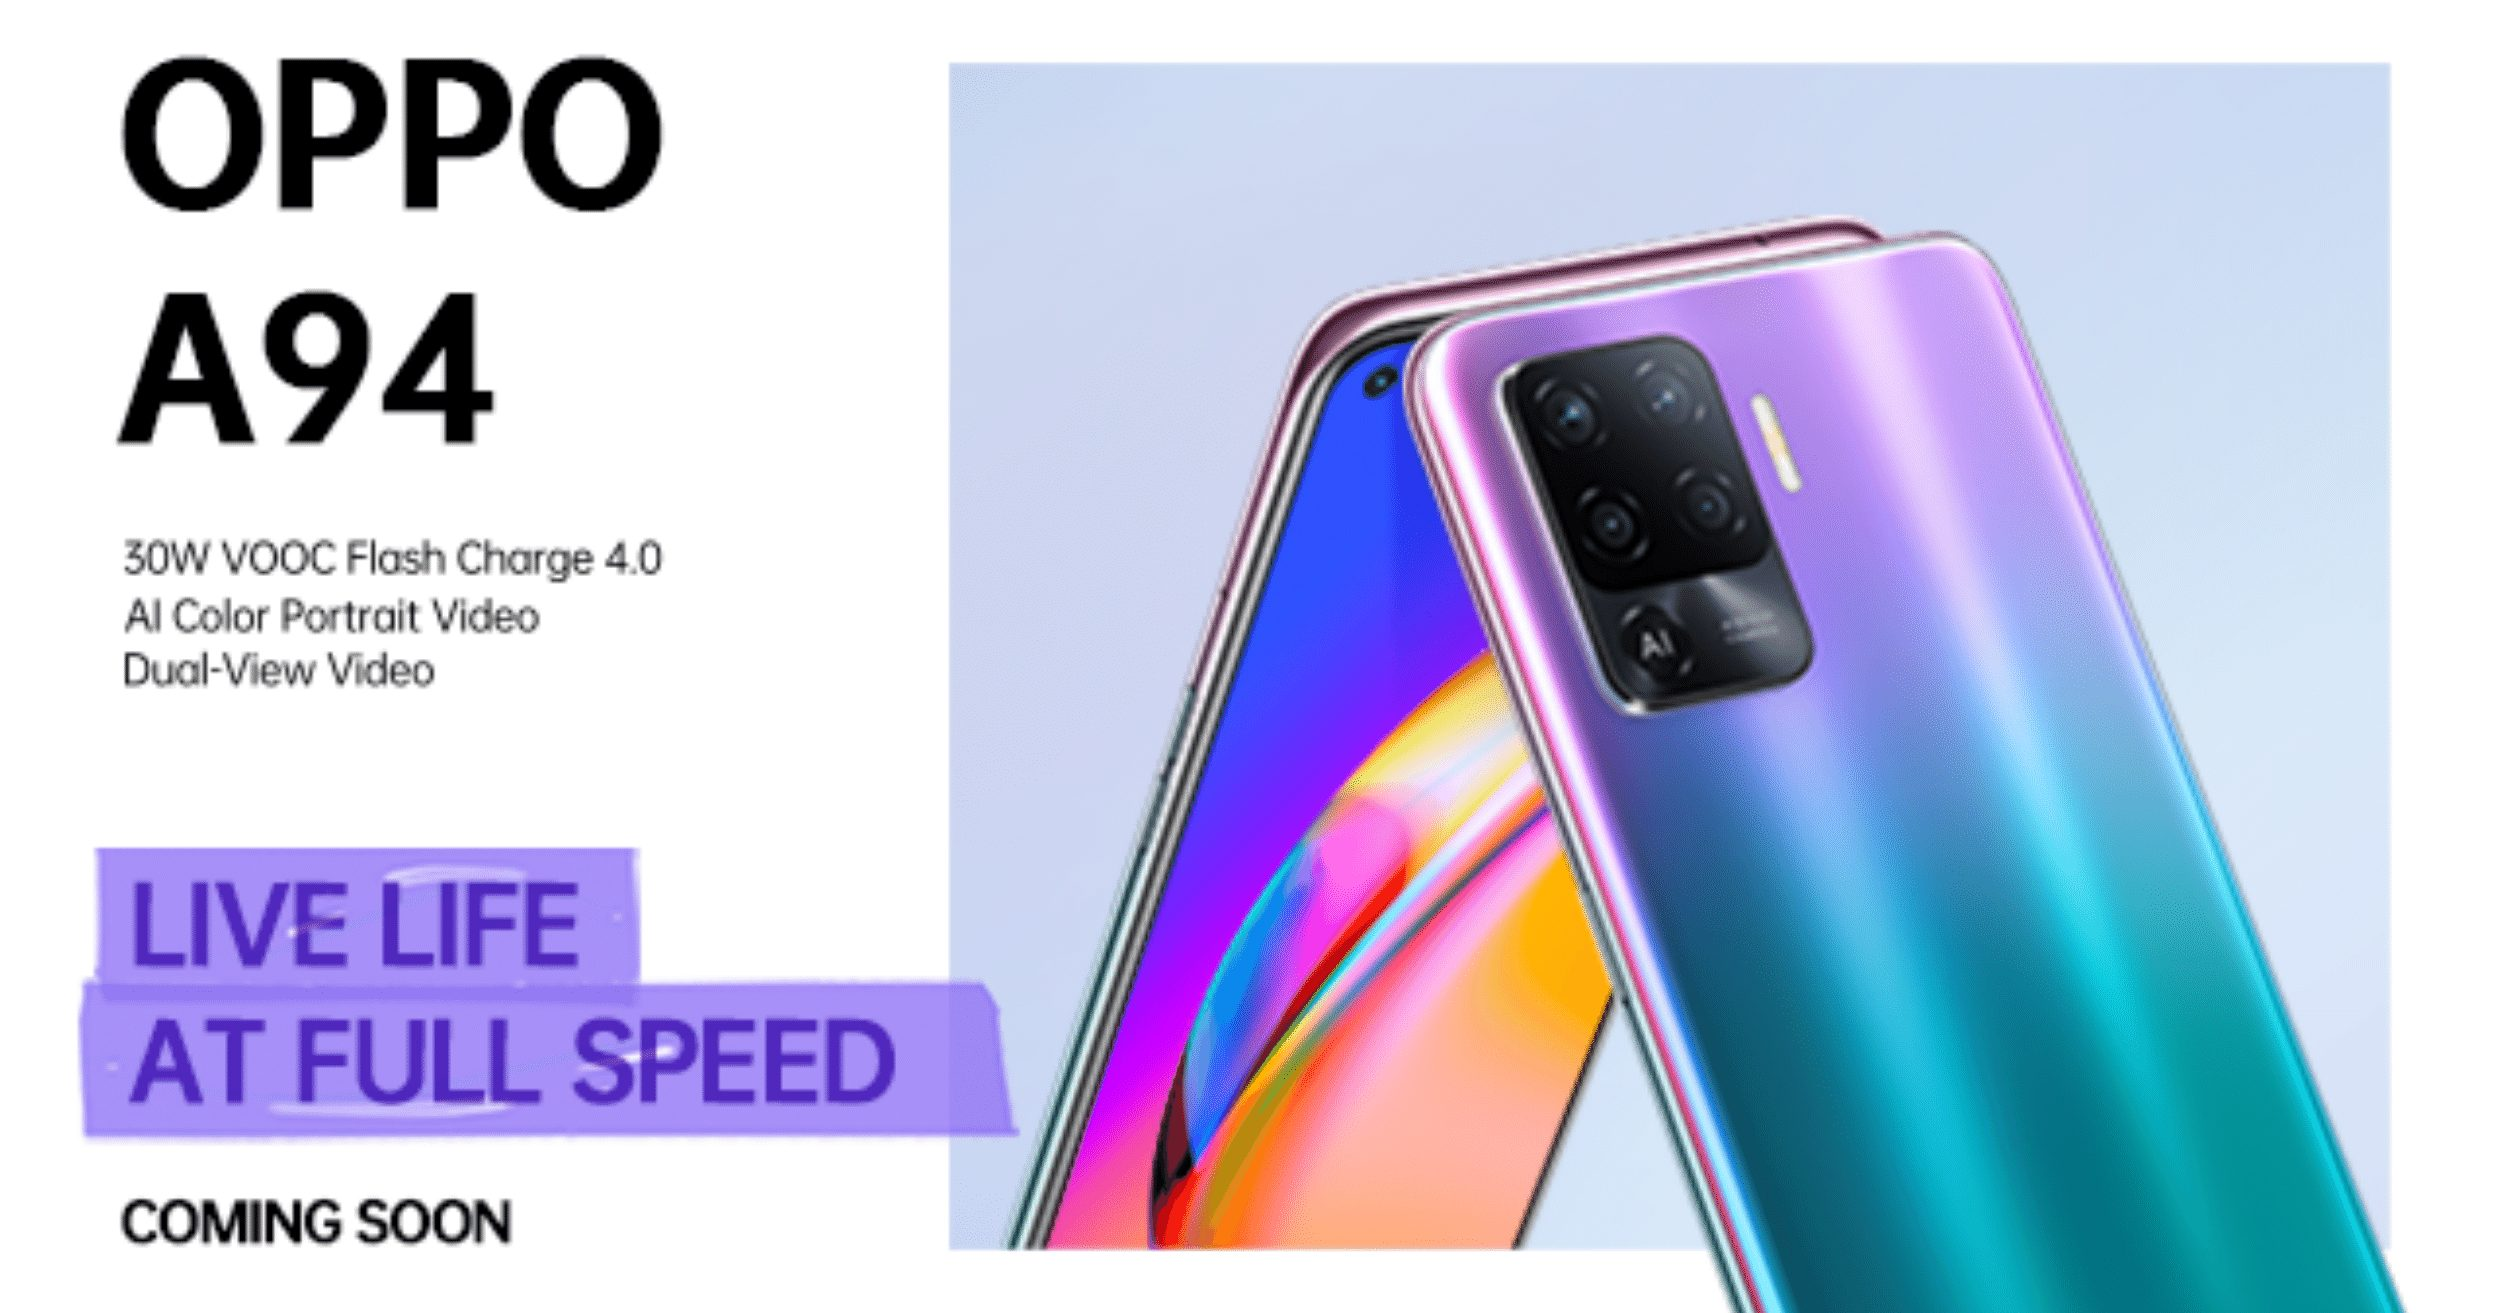 mobile-gaming-and-video-centric-oppo-a94-arriving-in-the-ph-on-march-26th